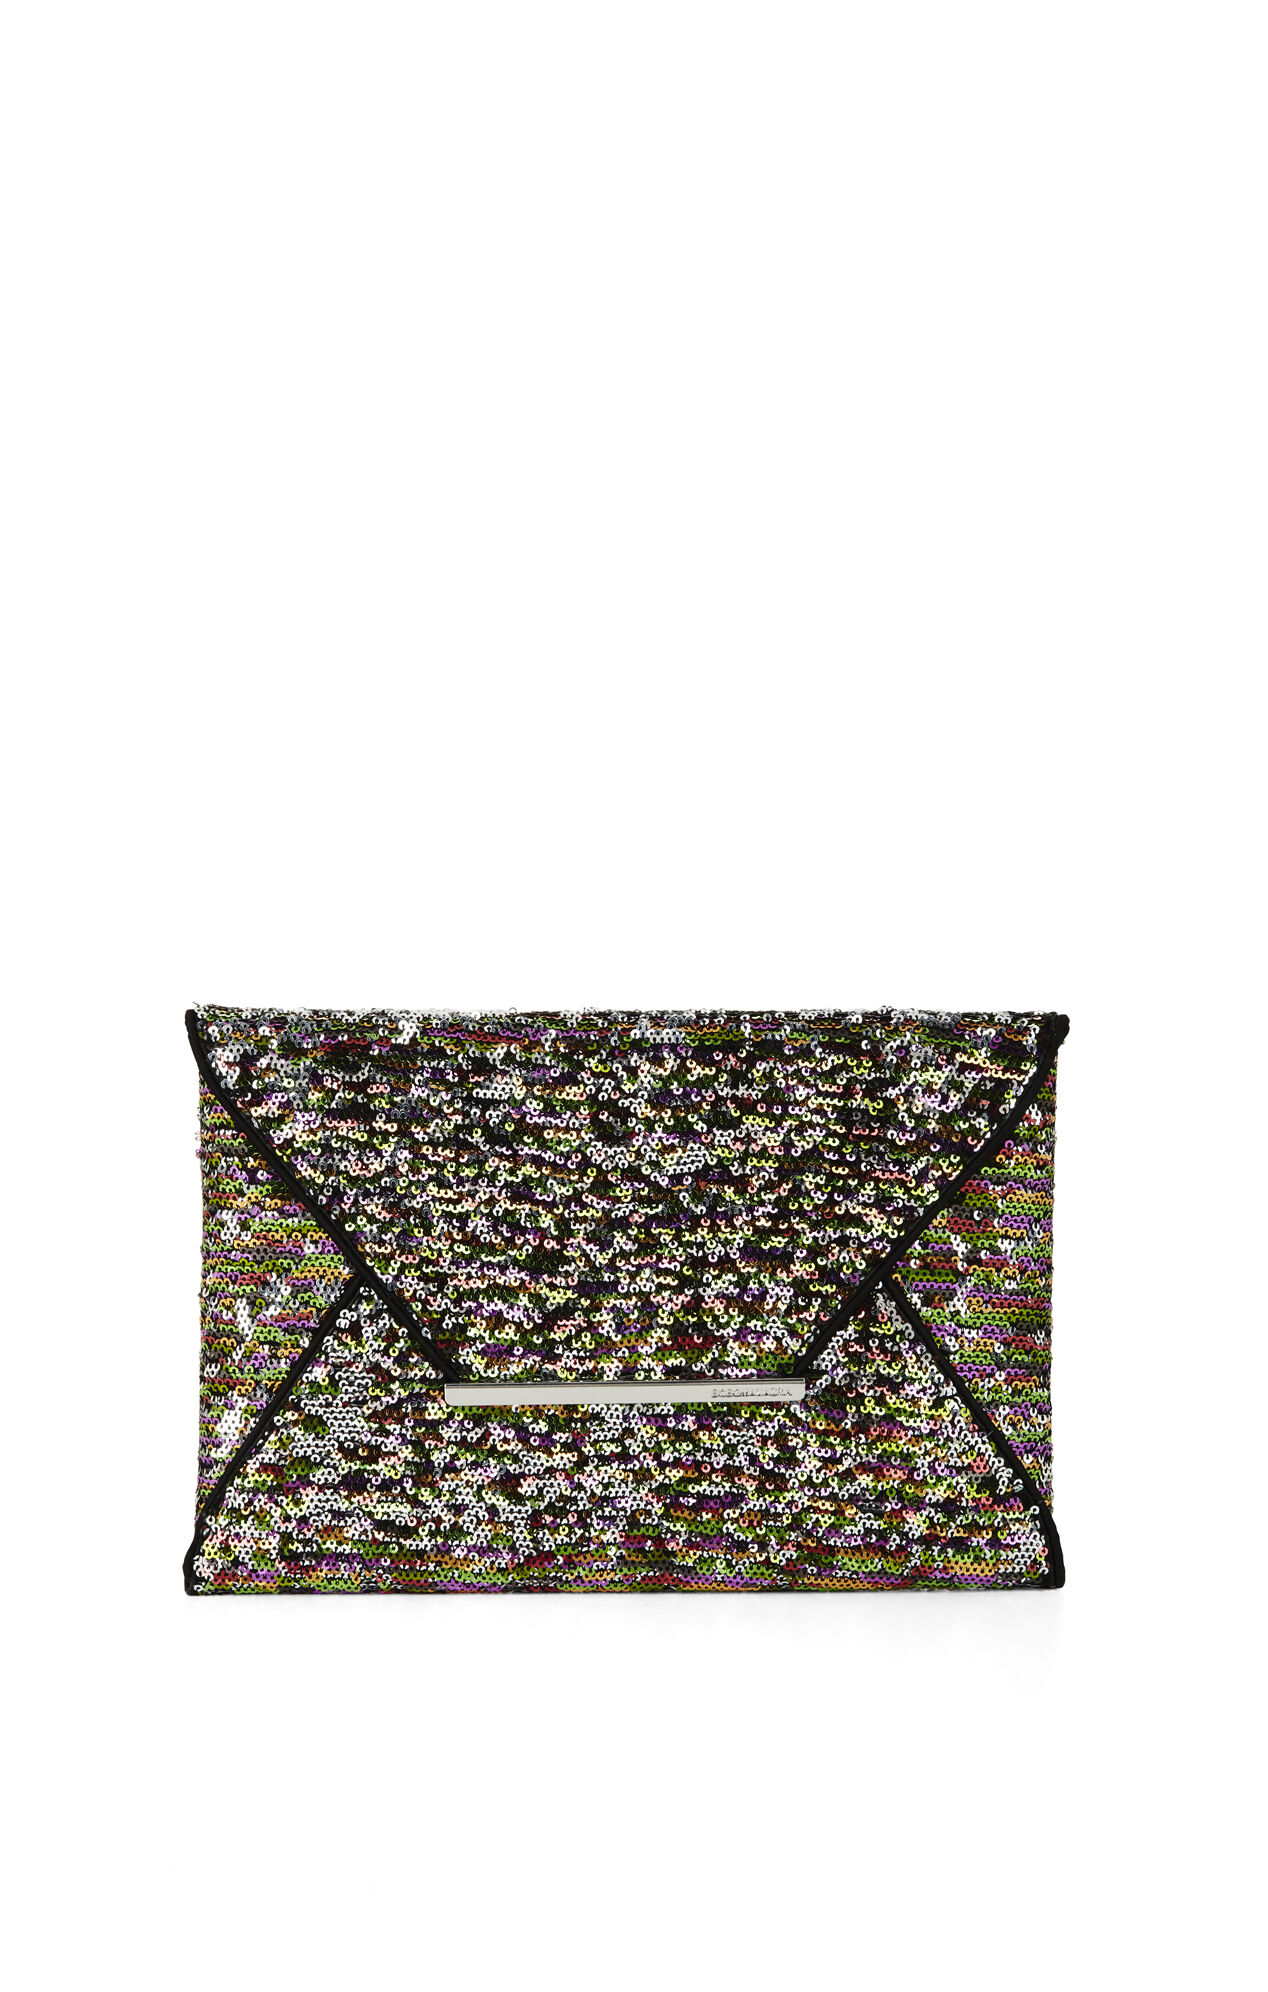 Harlow Sequined Envelope Clutch